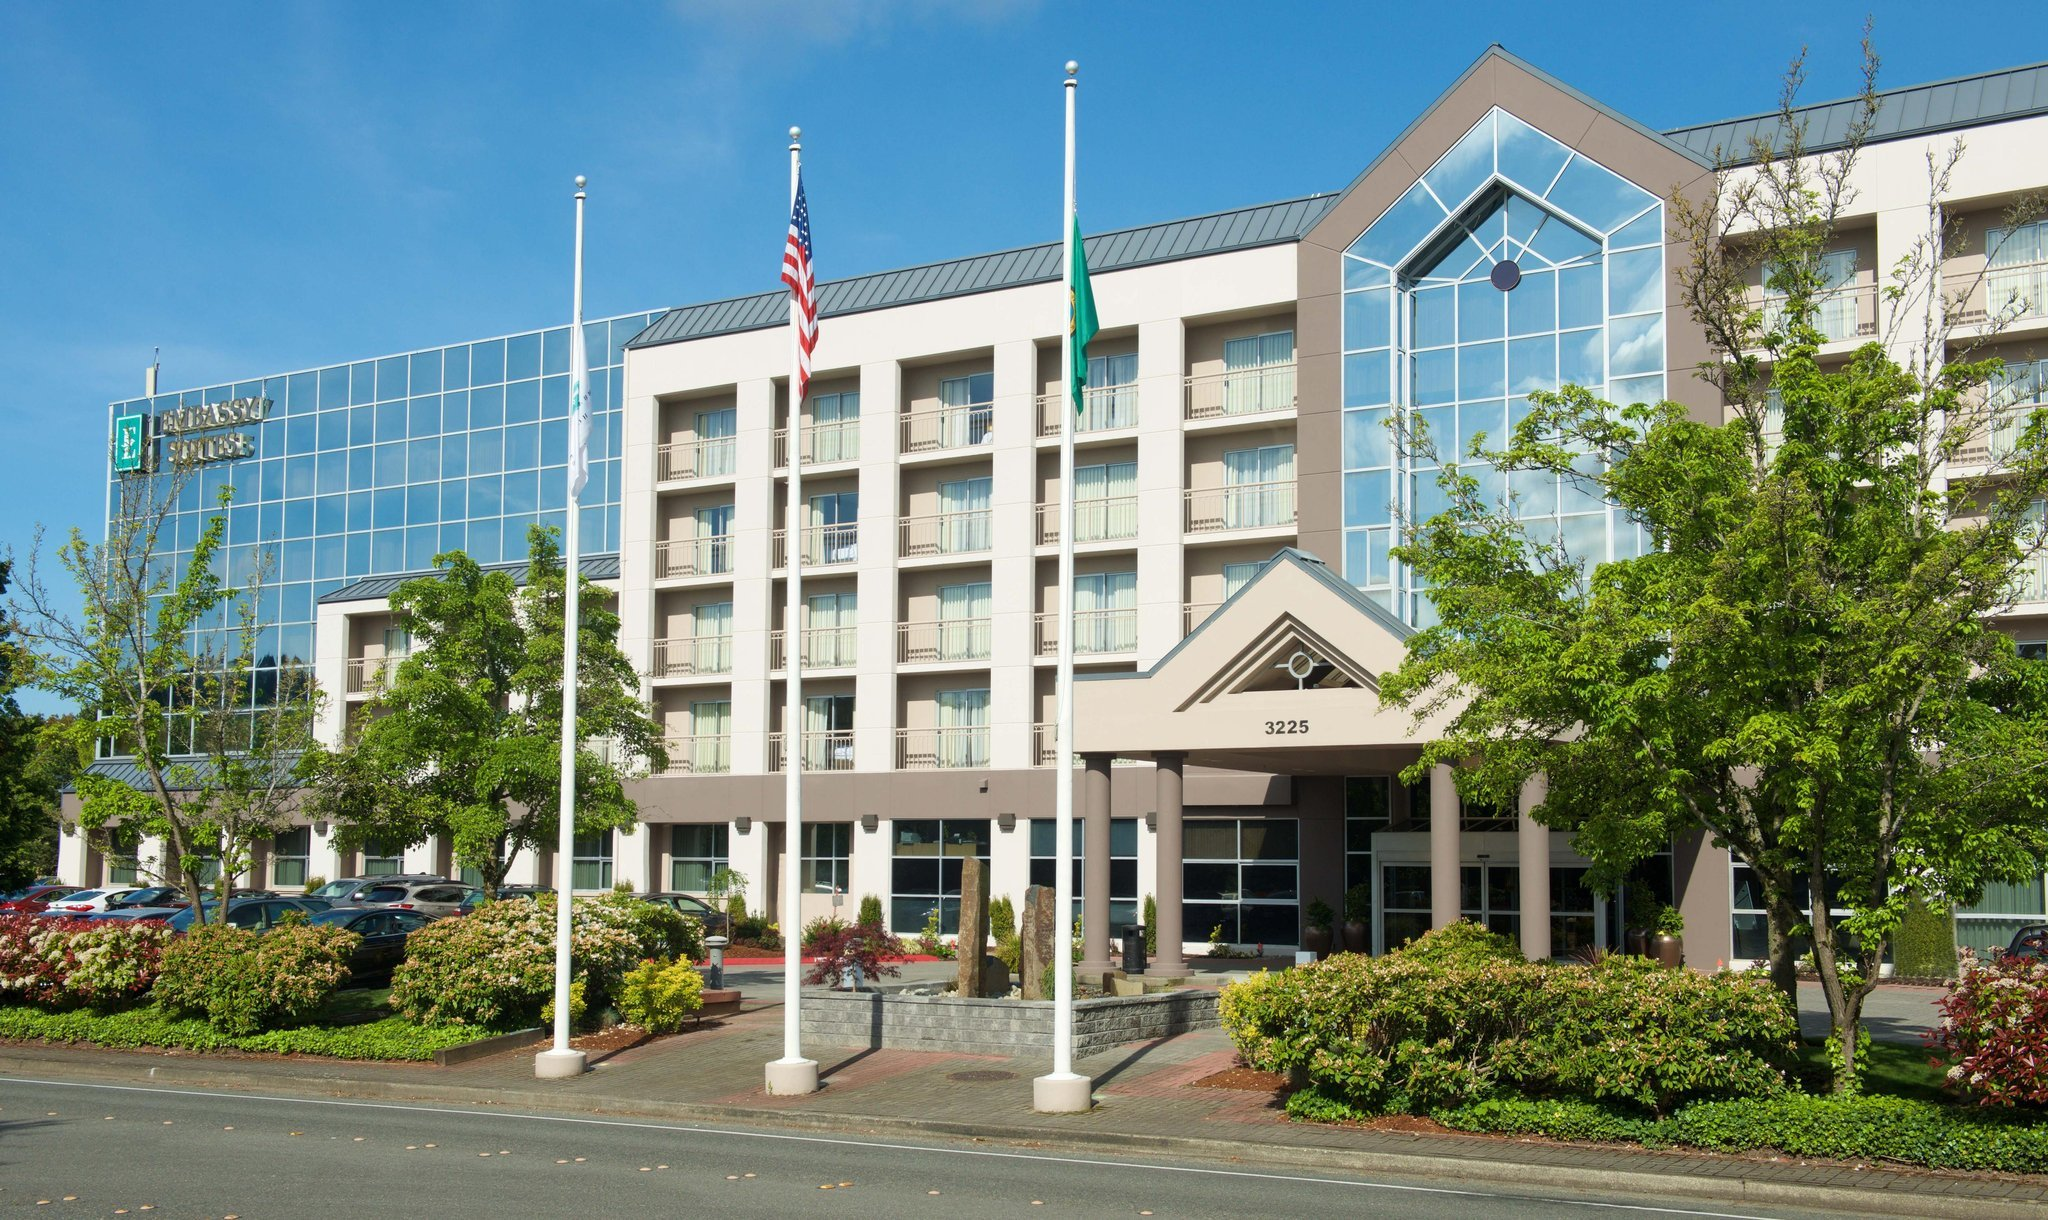 Embassy Suites by Hilton Seattle Bellevue